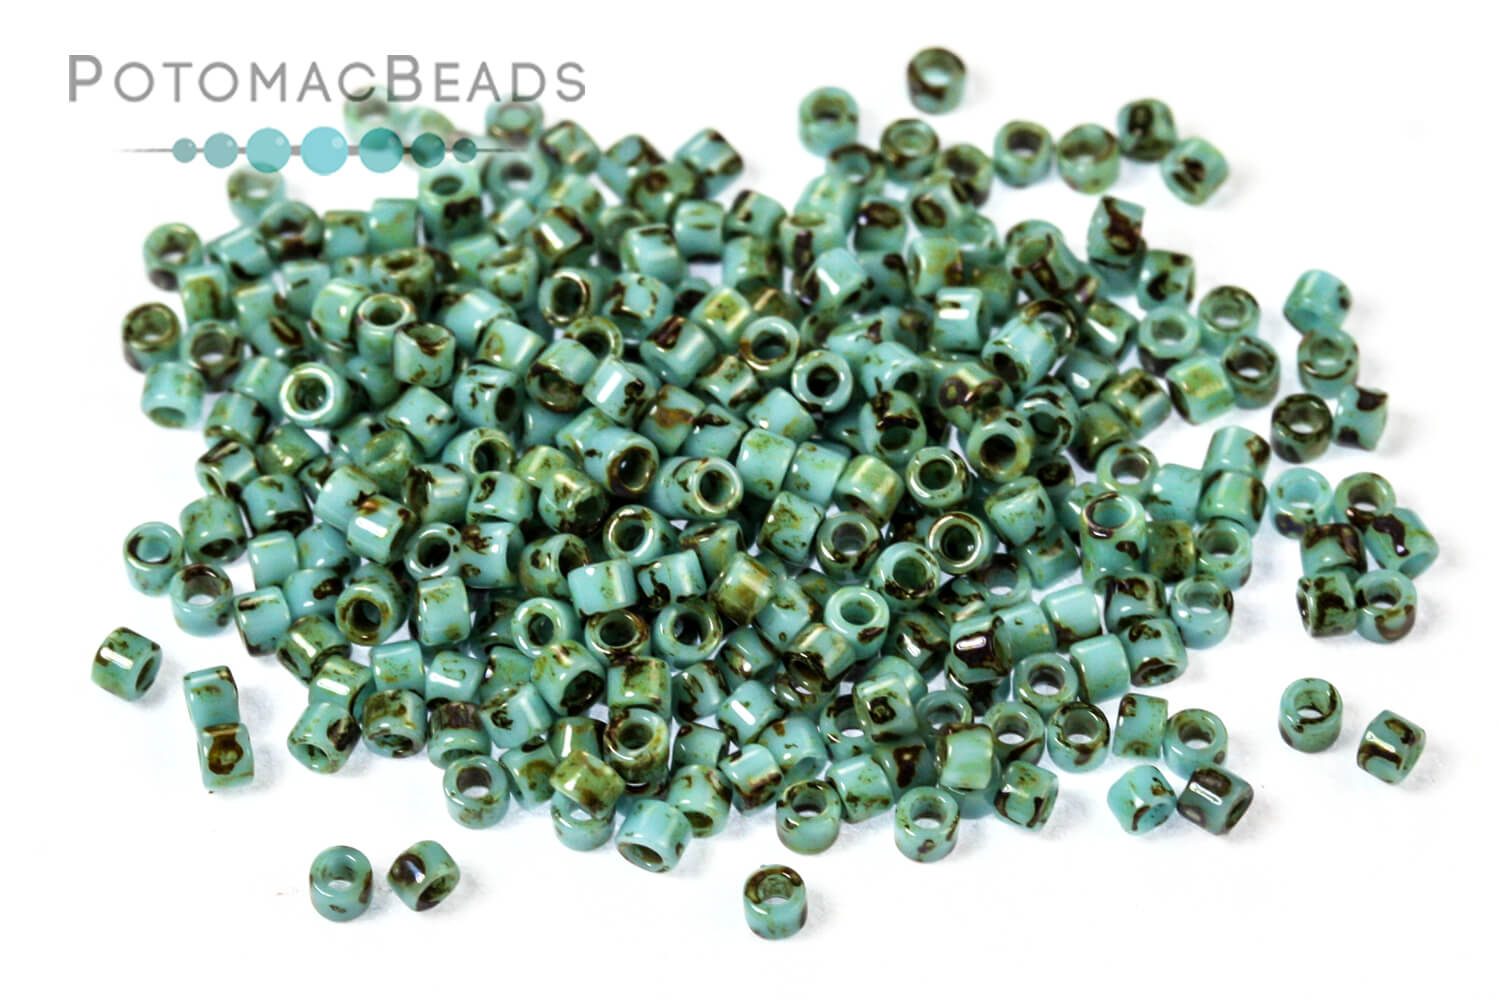 Seed Beads / Miyuki Delicas Beads / Delica Beads Size 11/0 - Picasso Colors